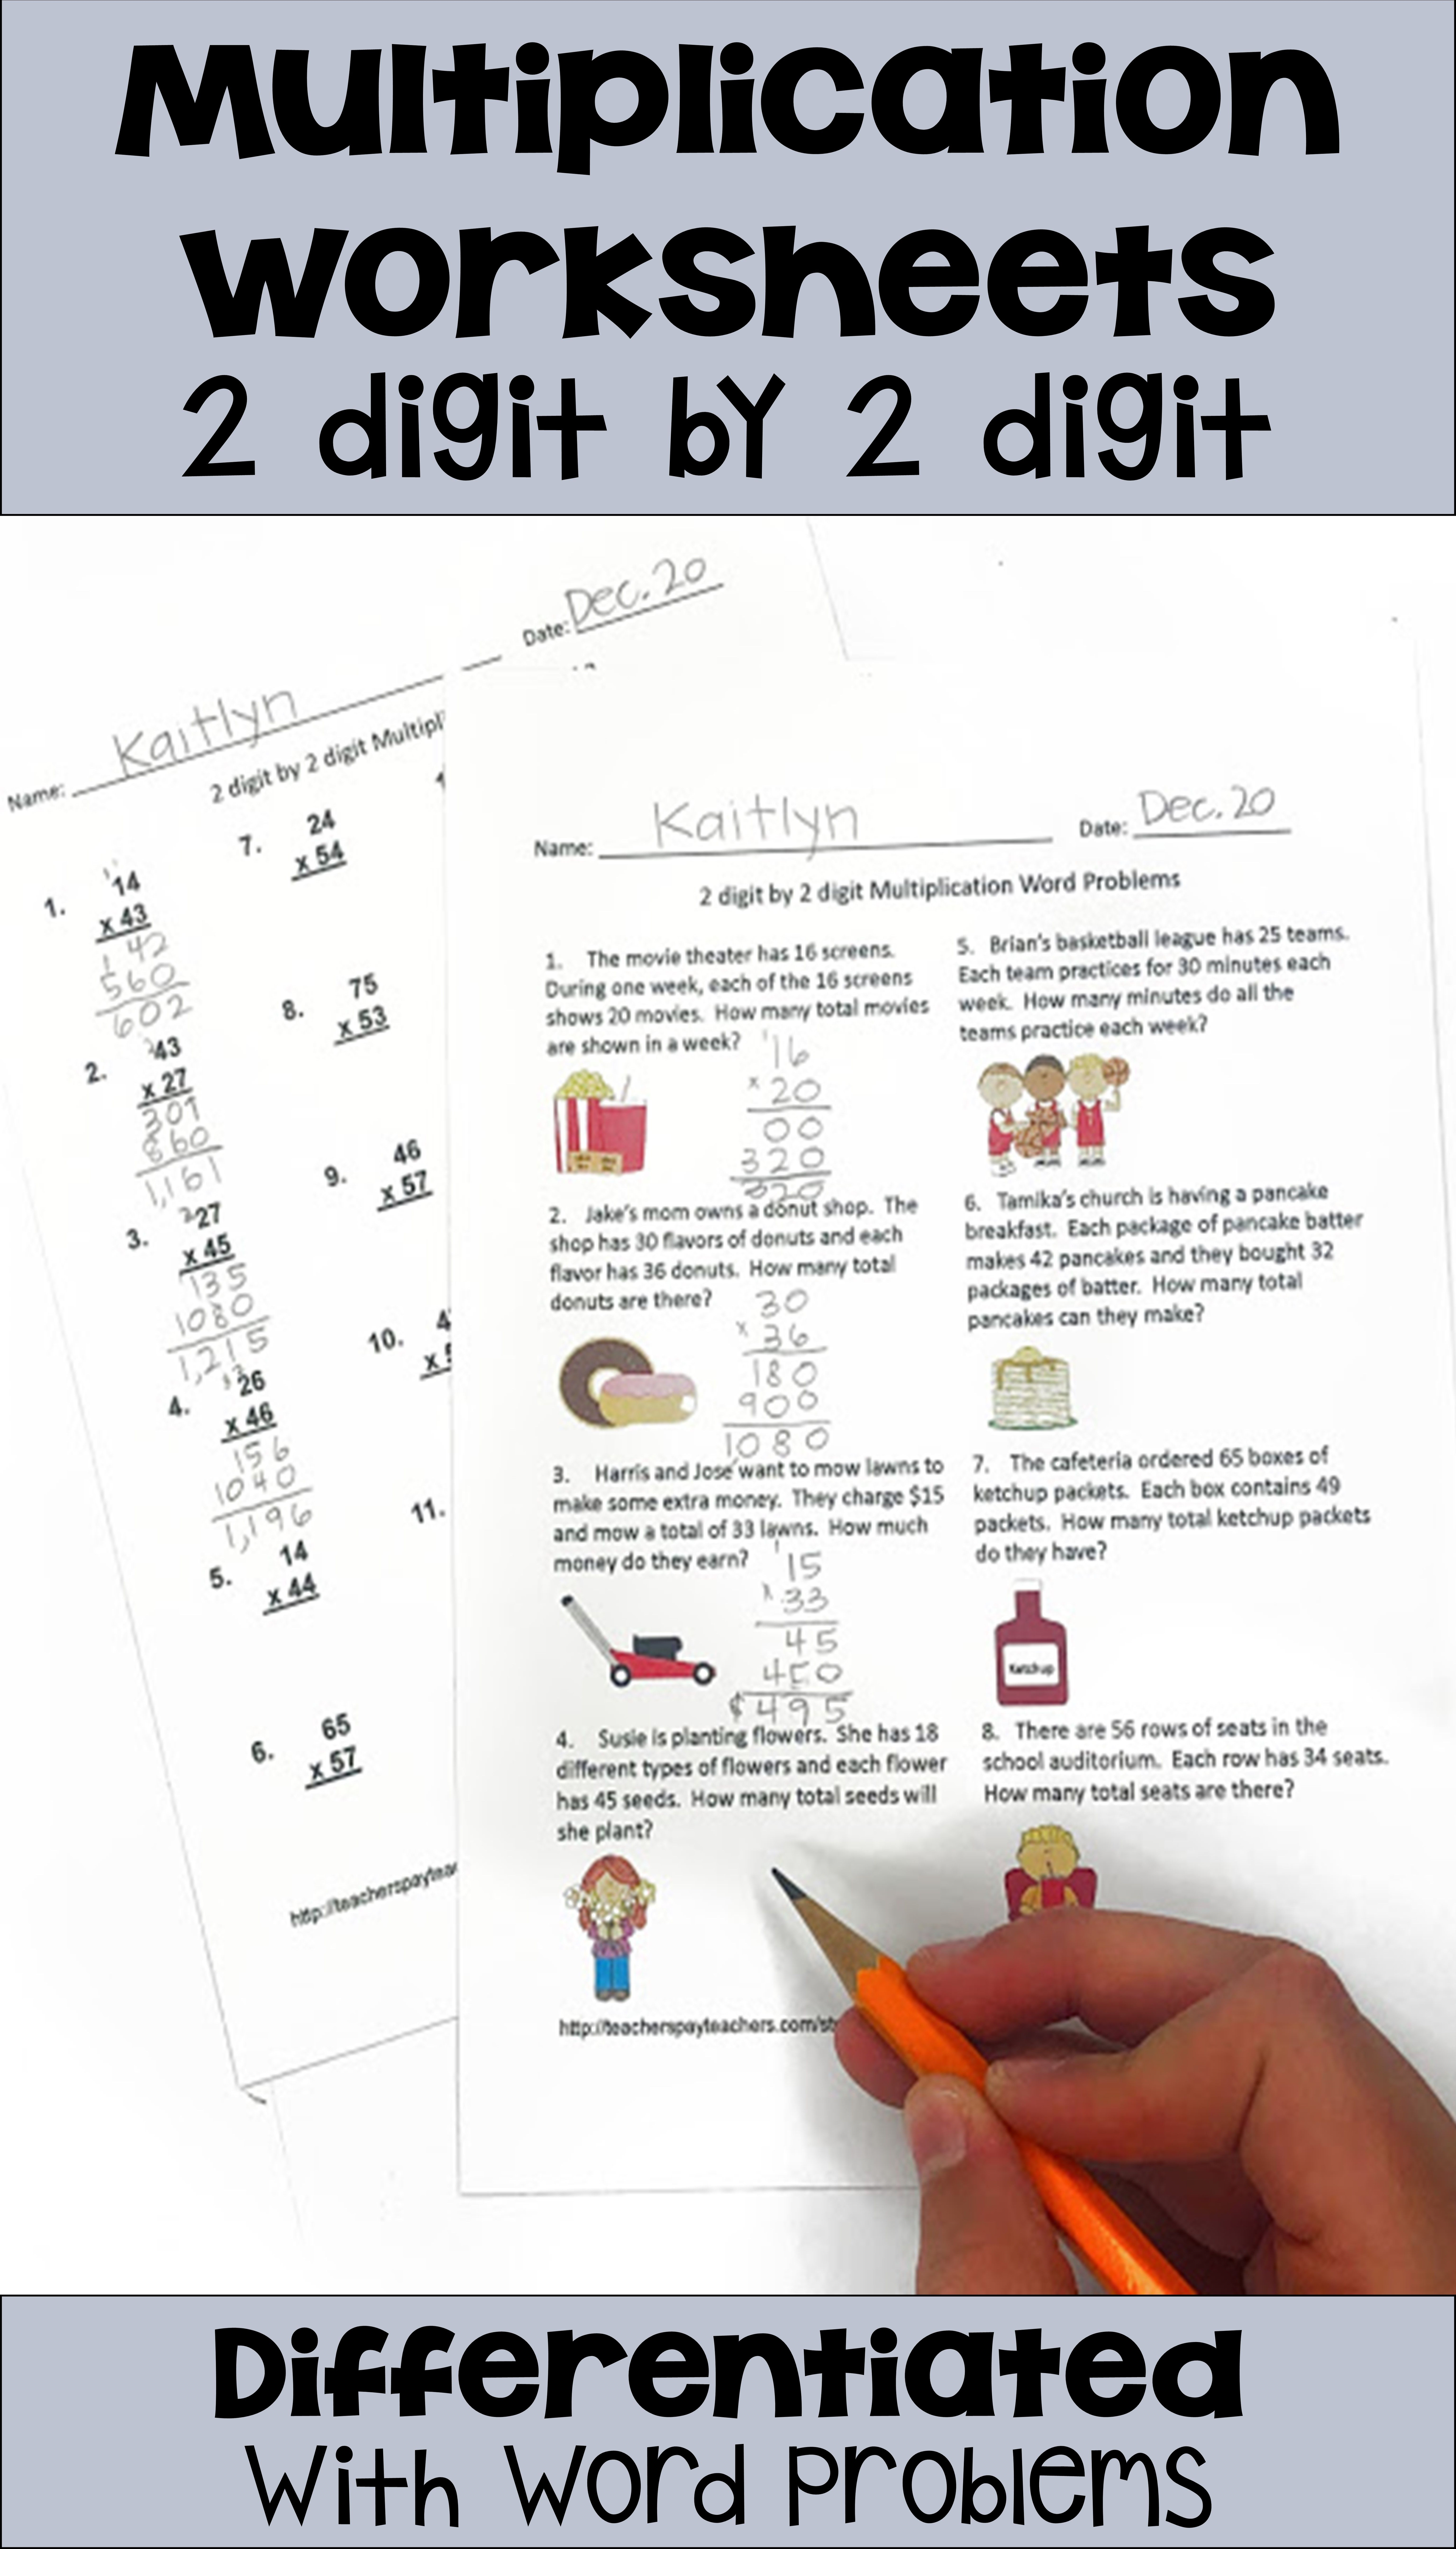 2 Digit By 2 Digit Multiplication Worksheets With Word Problems Word Problems Multiplication Word Problems Differentiation Math